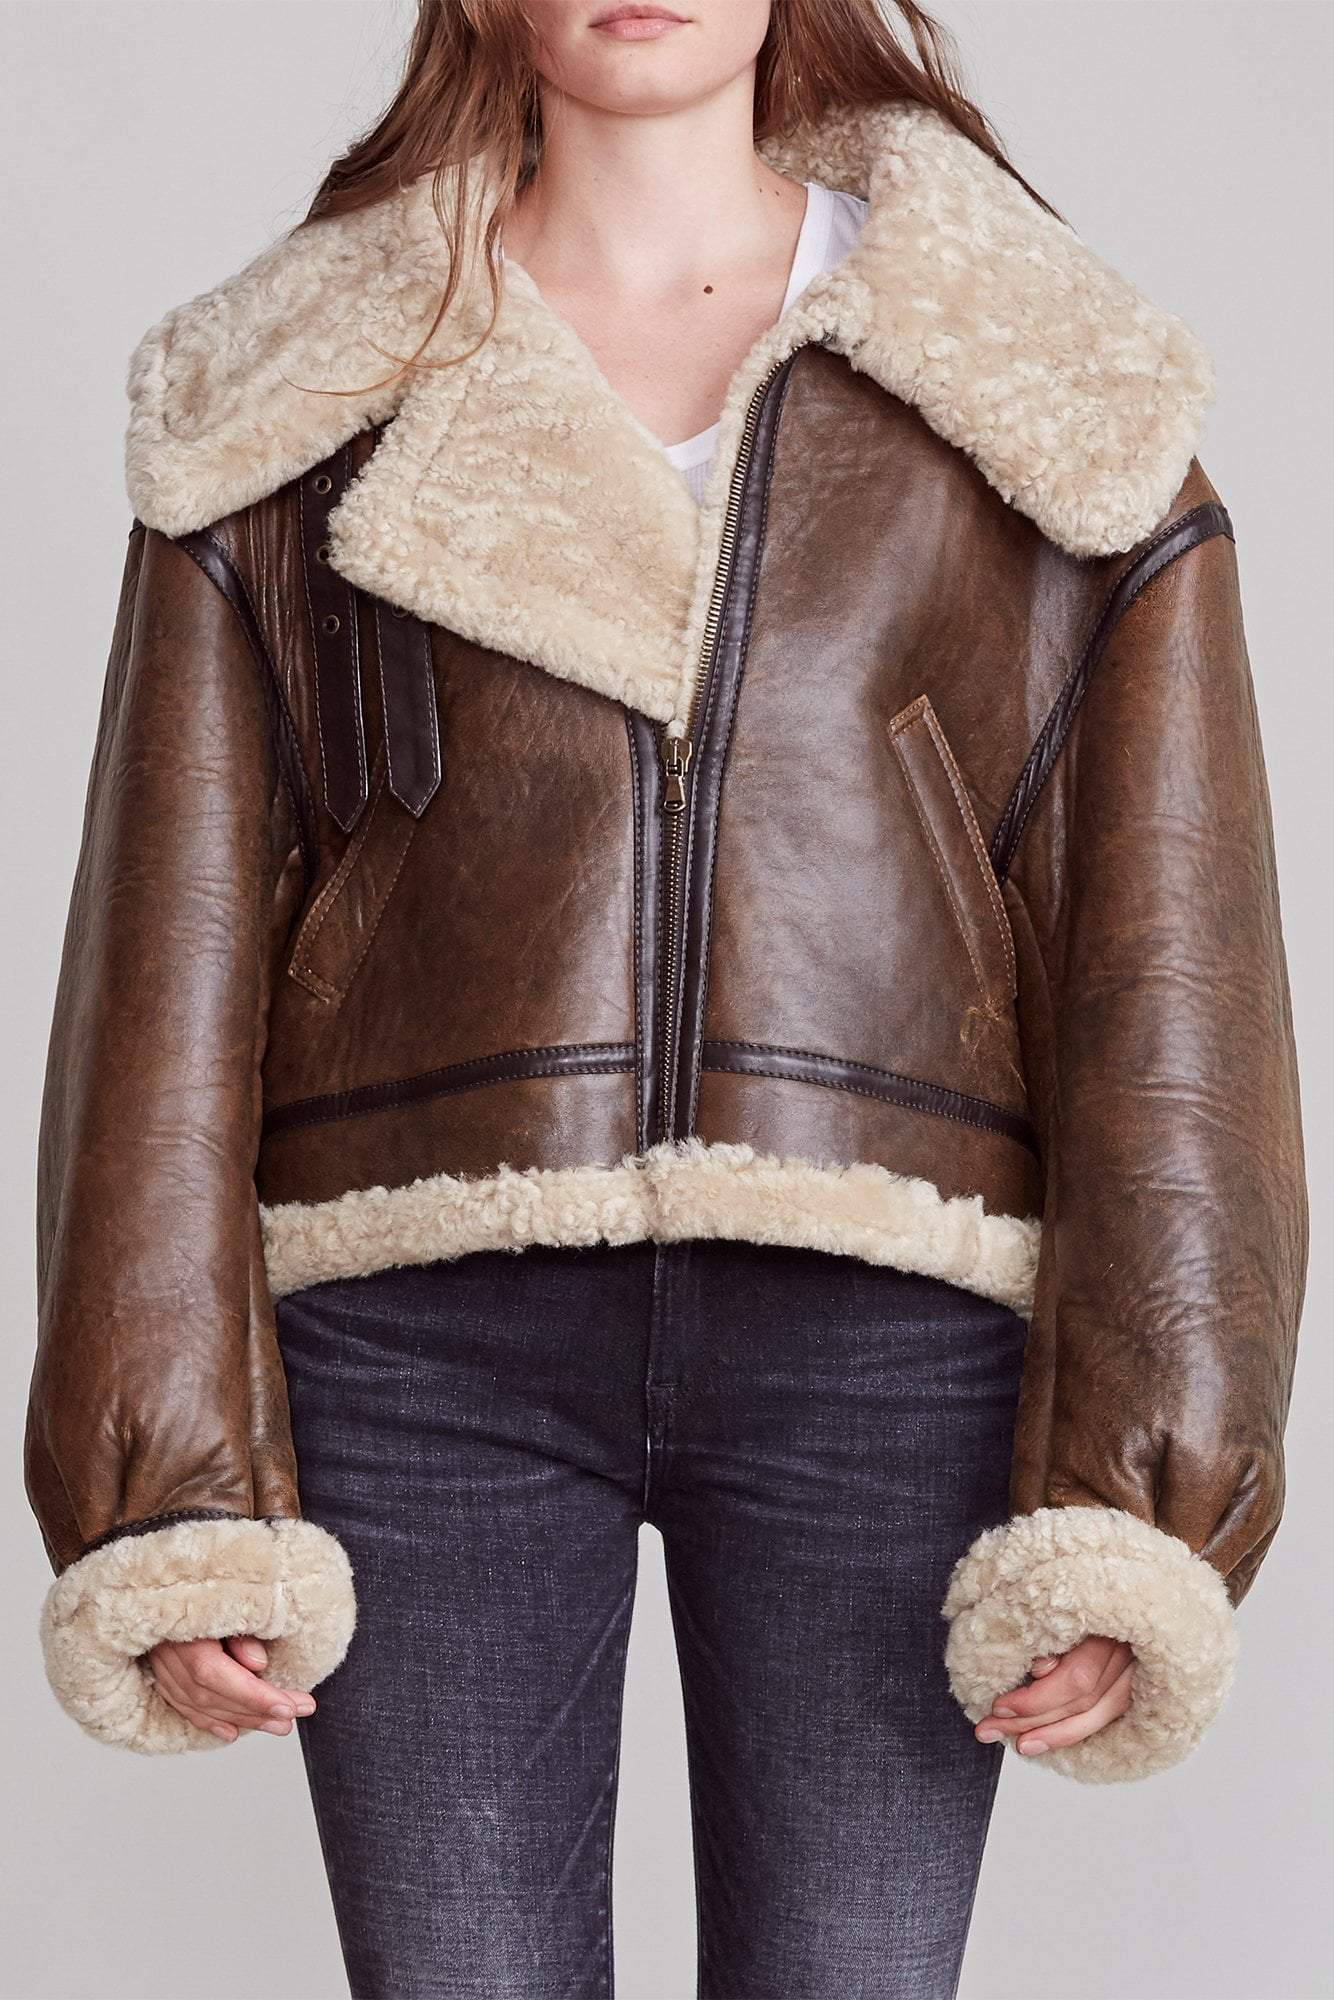 Sherpa Aviator Jacket by R13, available on r13denim.com for $3600 Hailey Baldwin Outerwear Exact Product